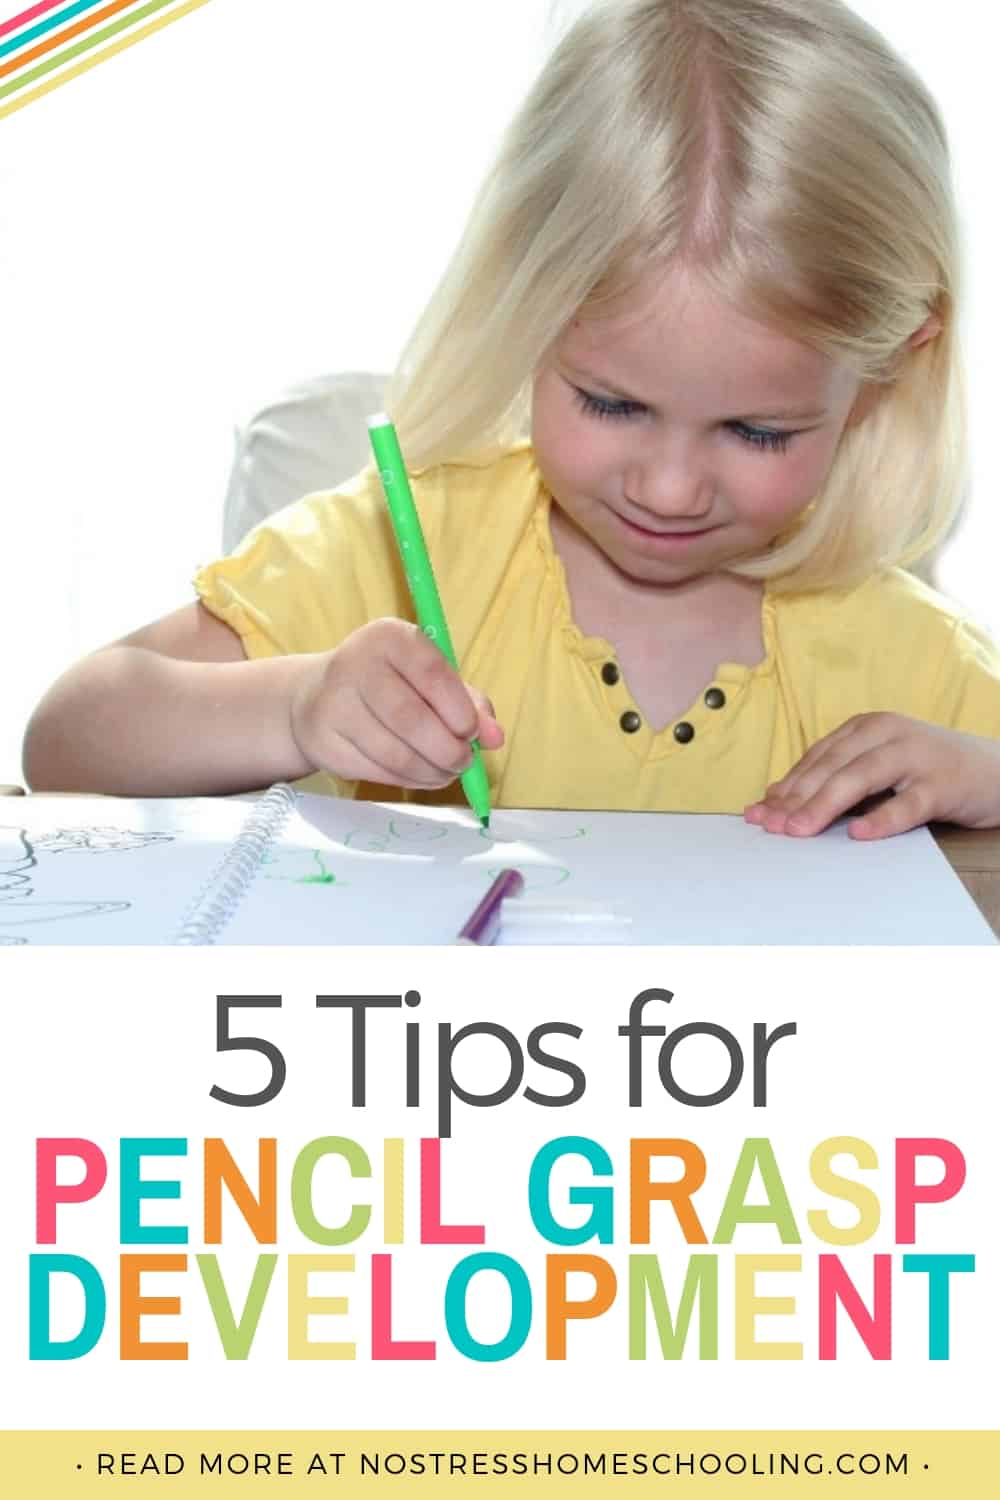 Pencil grasp development can seem so scary! Here are a few tips to help you equip your kids in learning how to write